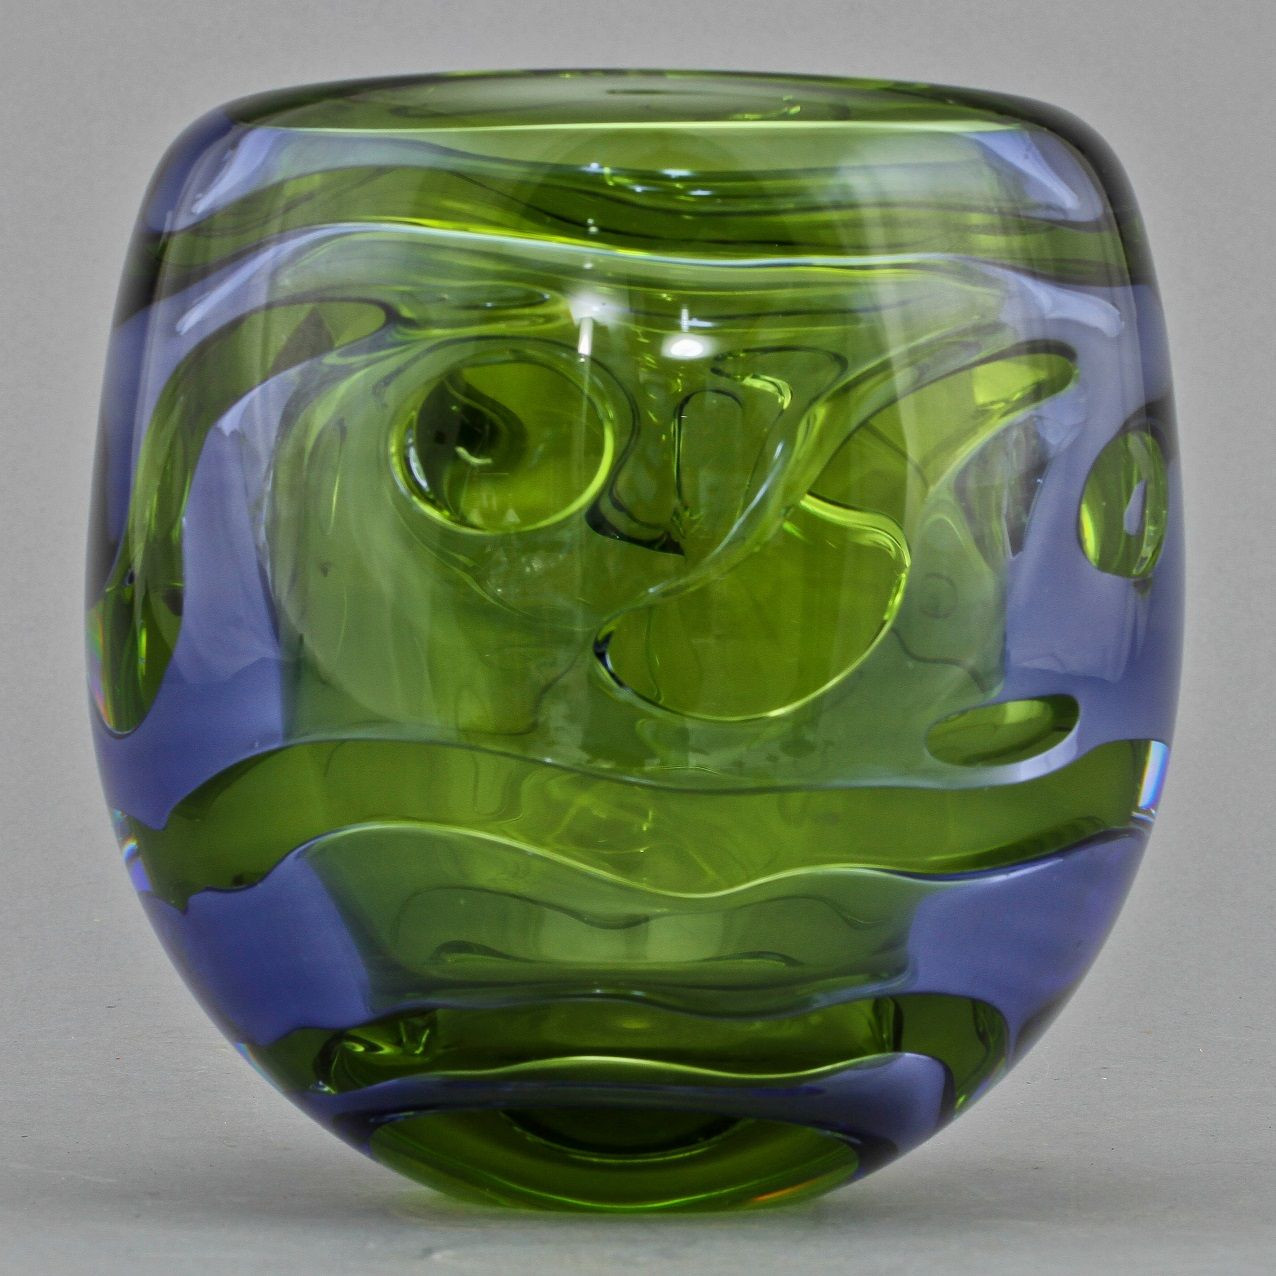 Scandinavian Glass Vase Of Bengt Edenfalk Swedish Thalatta Glass Vase Swedish Pinterest In Bengt Edenfalk Swedish Thalatta Glass Vase